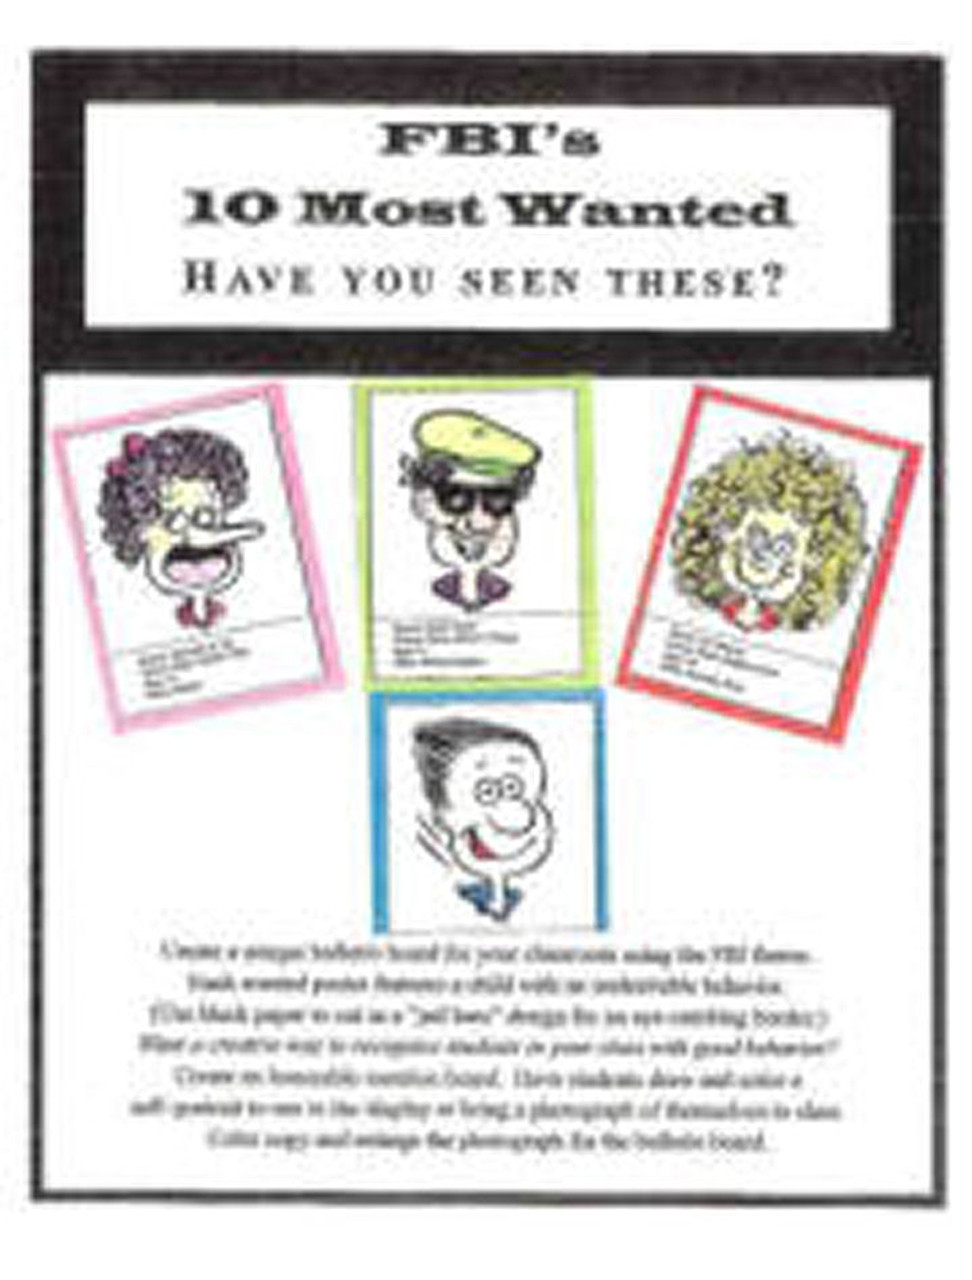 FBI's 10 Most Wanted (object story)